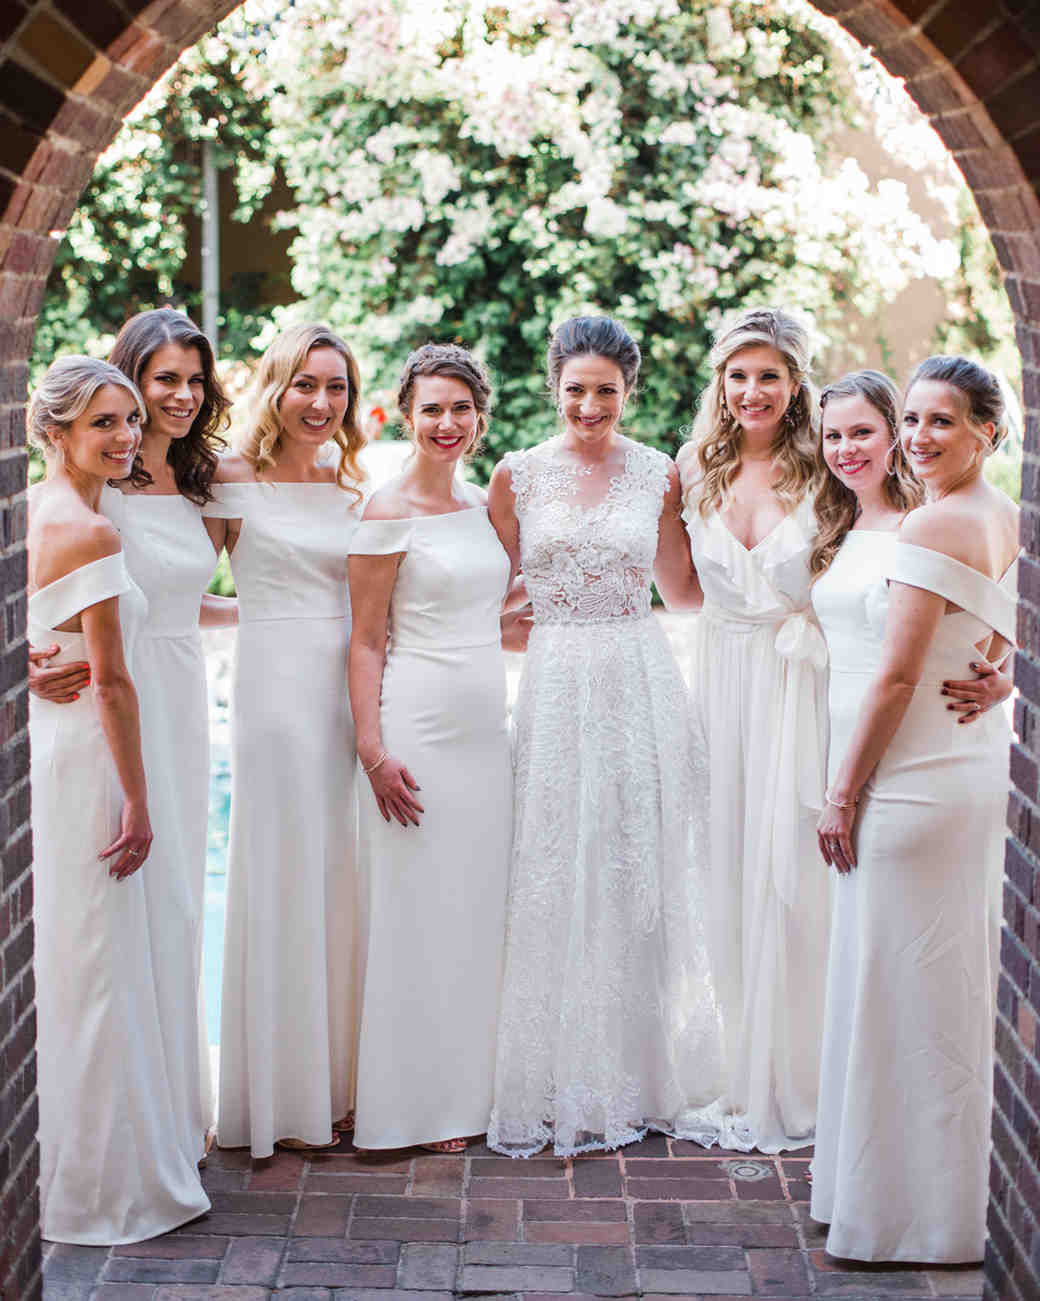 26 Chic Bridal Parties Wearing All White Dresses Martha Weddings